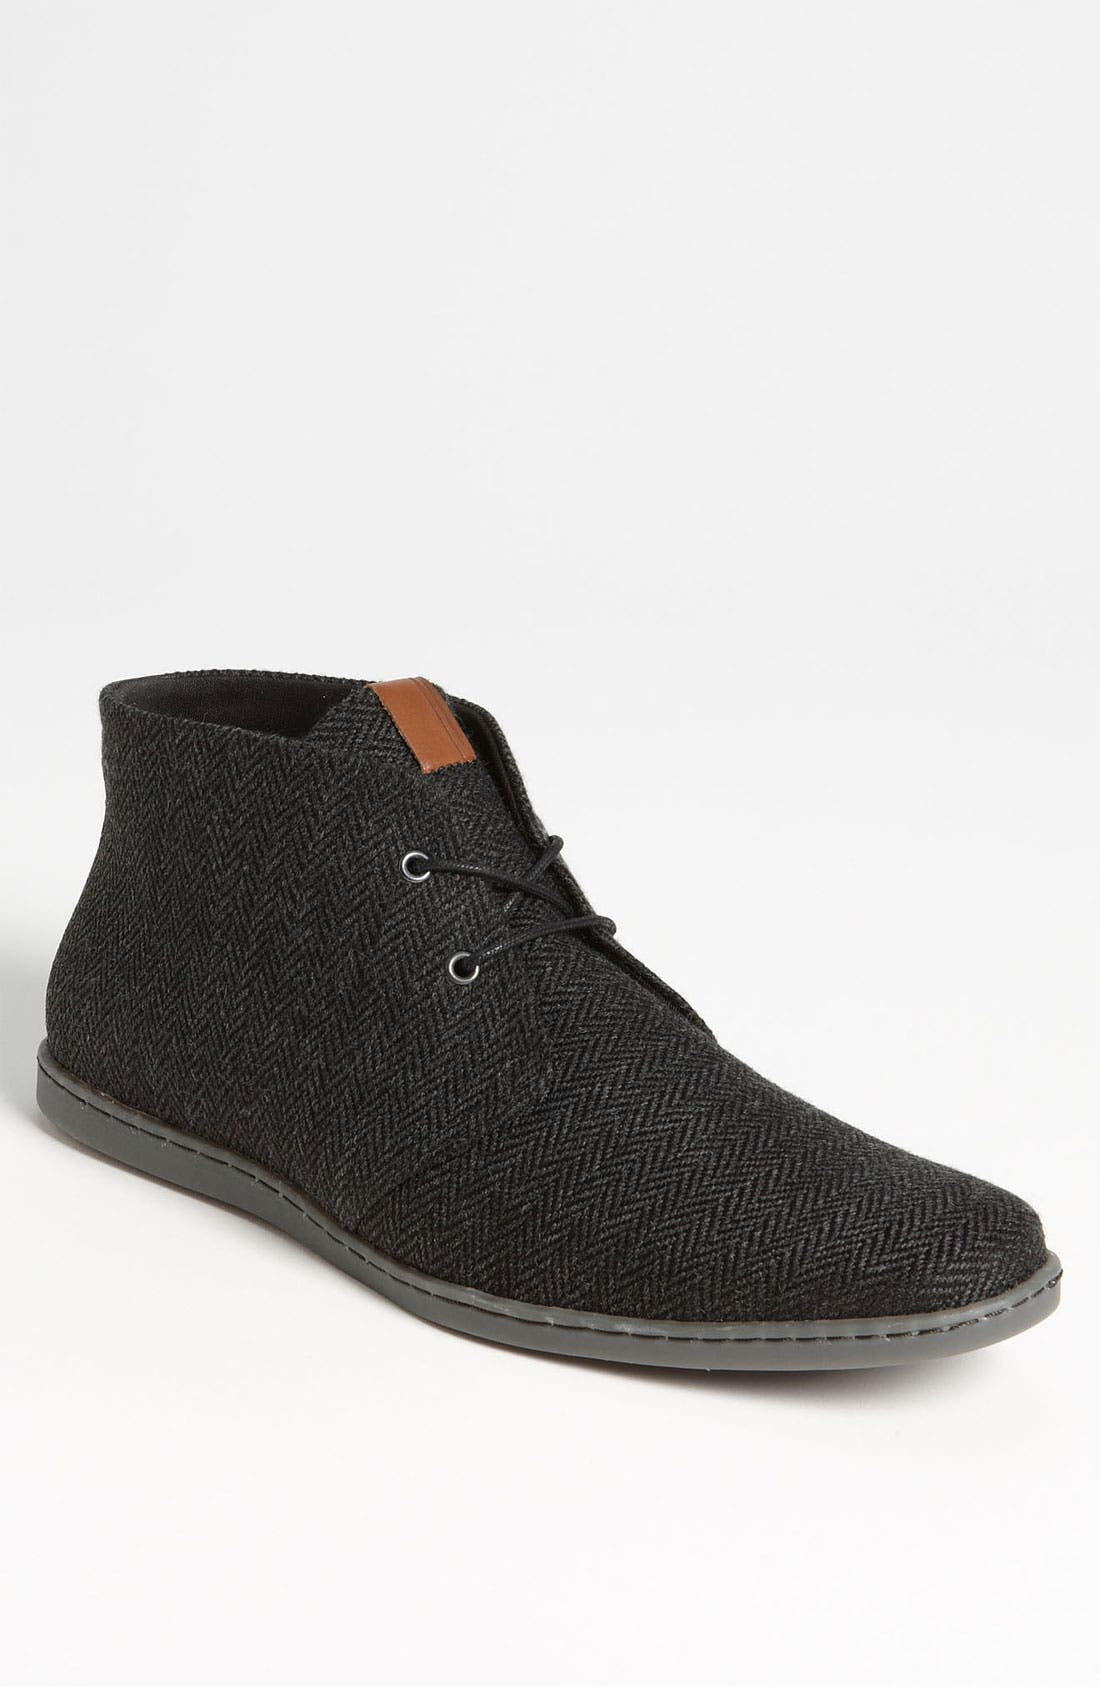 Alternate Image 1 Selected - Fred Perry 'Goldhawk' Chukka Boot